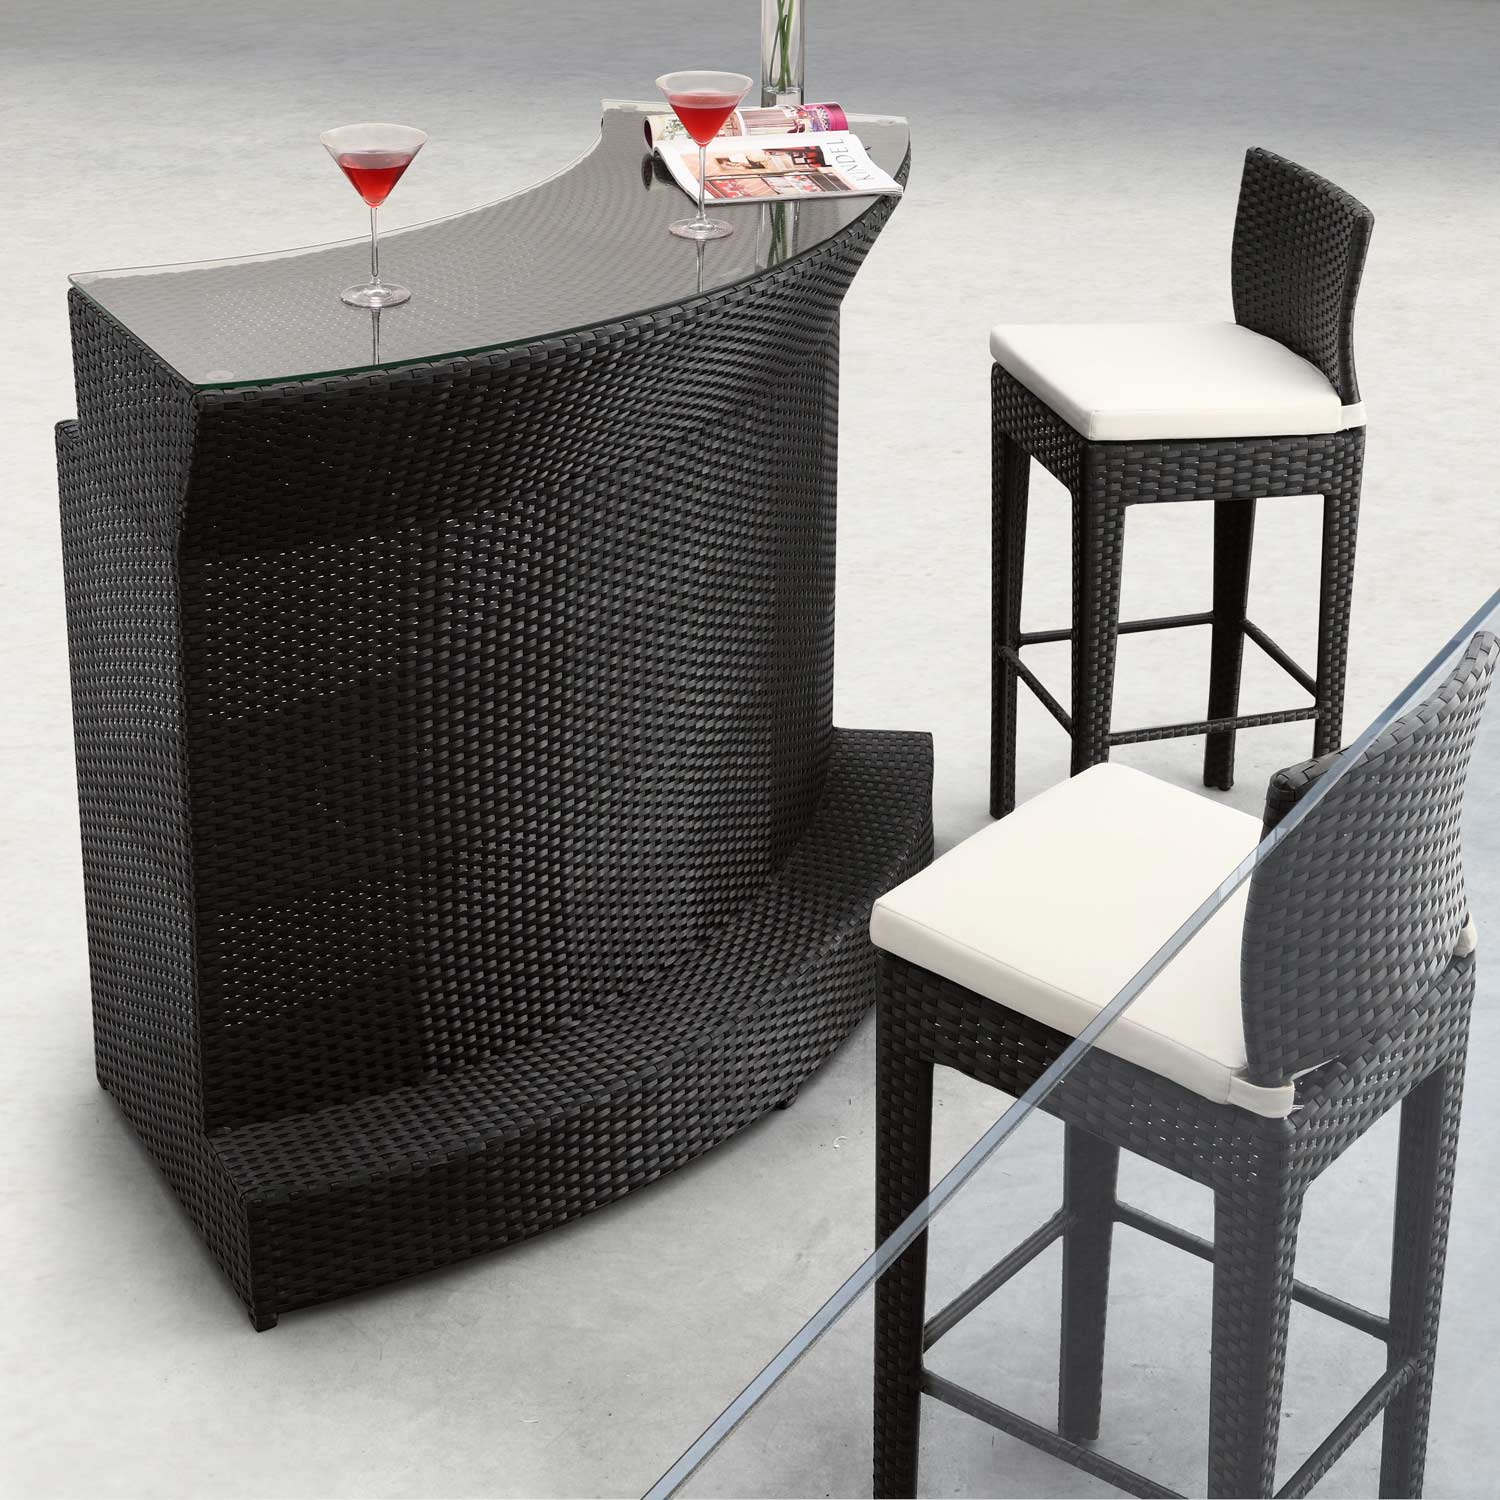 Negril Curved Outdoor Bar Table - Espresso Wicker - ZM-701384